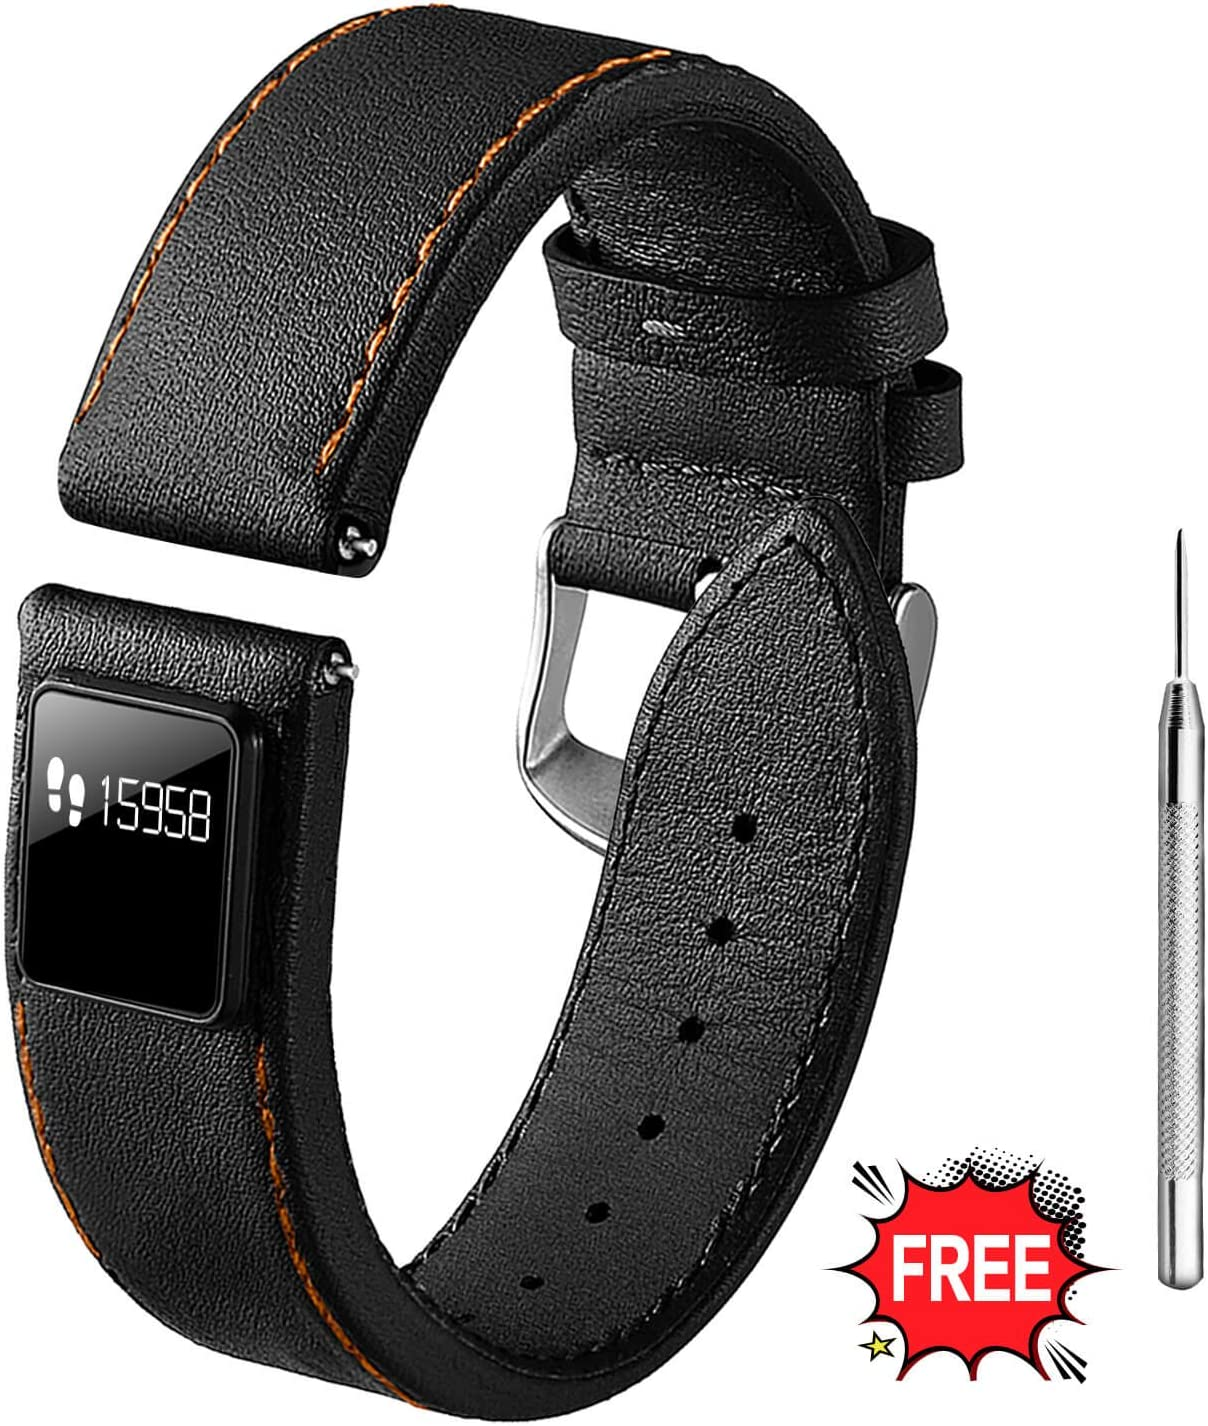 Amazon Com Hot Teen Quick Release Top Leather Watch Strap With Fitness Tracker Calorie Counter Sport Pedometer Sleep Monitoring Watch Band Color And Width Selection 20mm Or 22mm Nappa Black 22mm